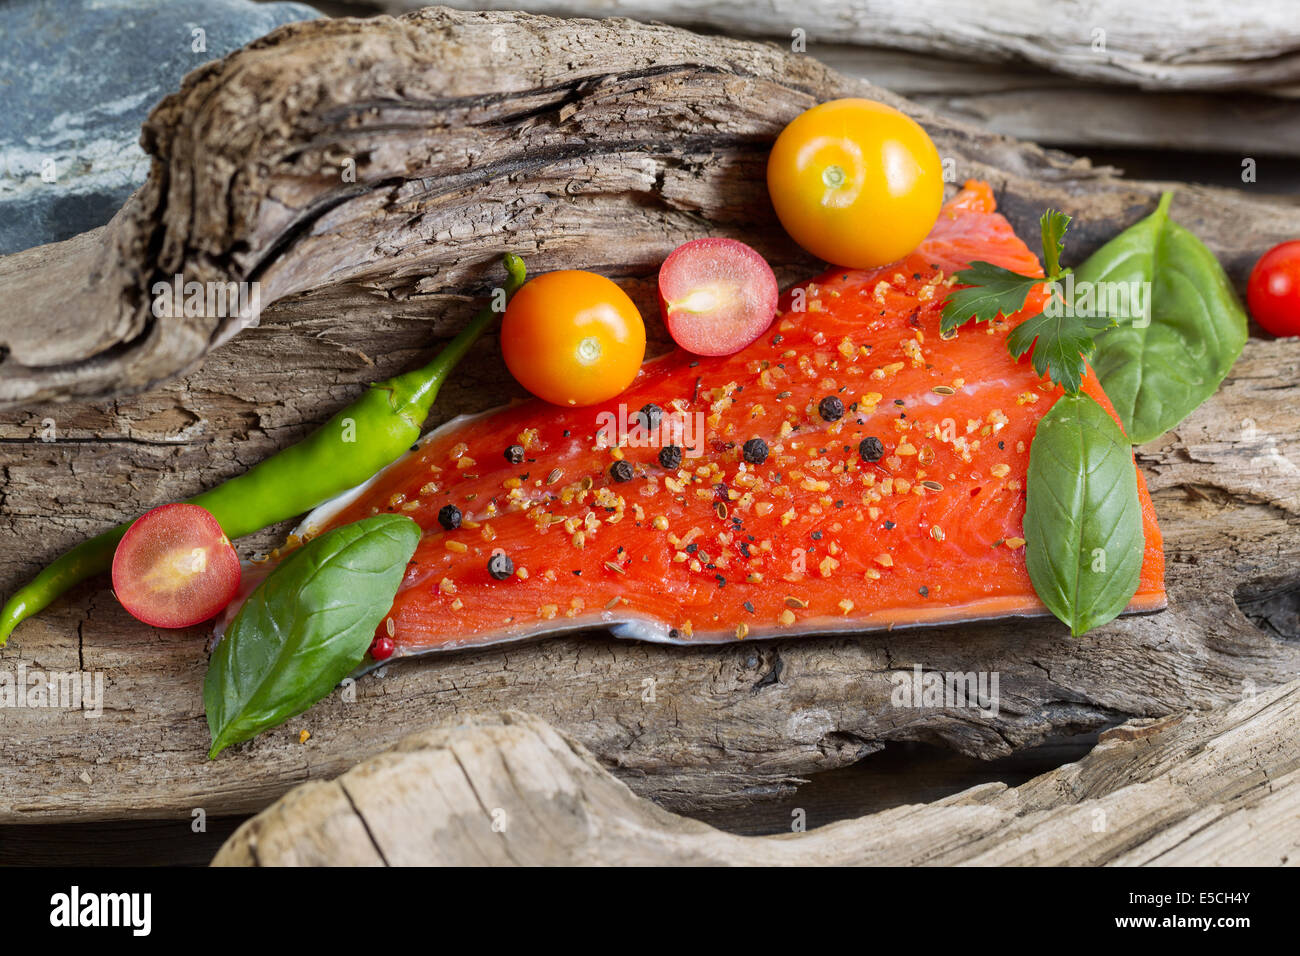 Horizontal view of raw salmon fillet, skin side down, with seasoning inside of drift wood - Stock Image